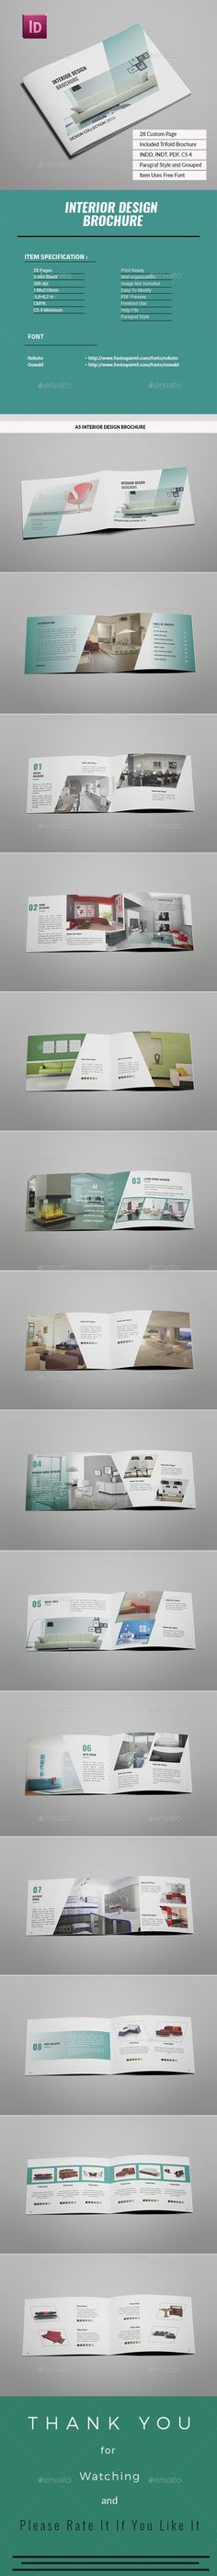 Co Landscape Brochure Template PSD - 14 Pages Brochure Templates - landscape brochure